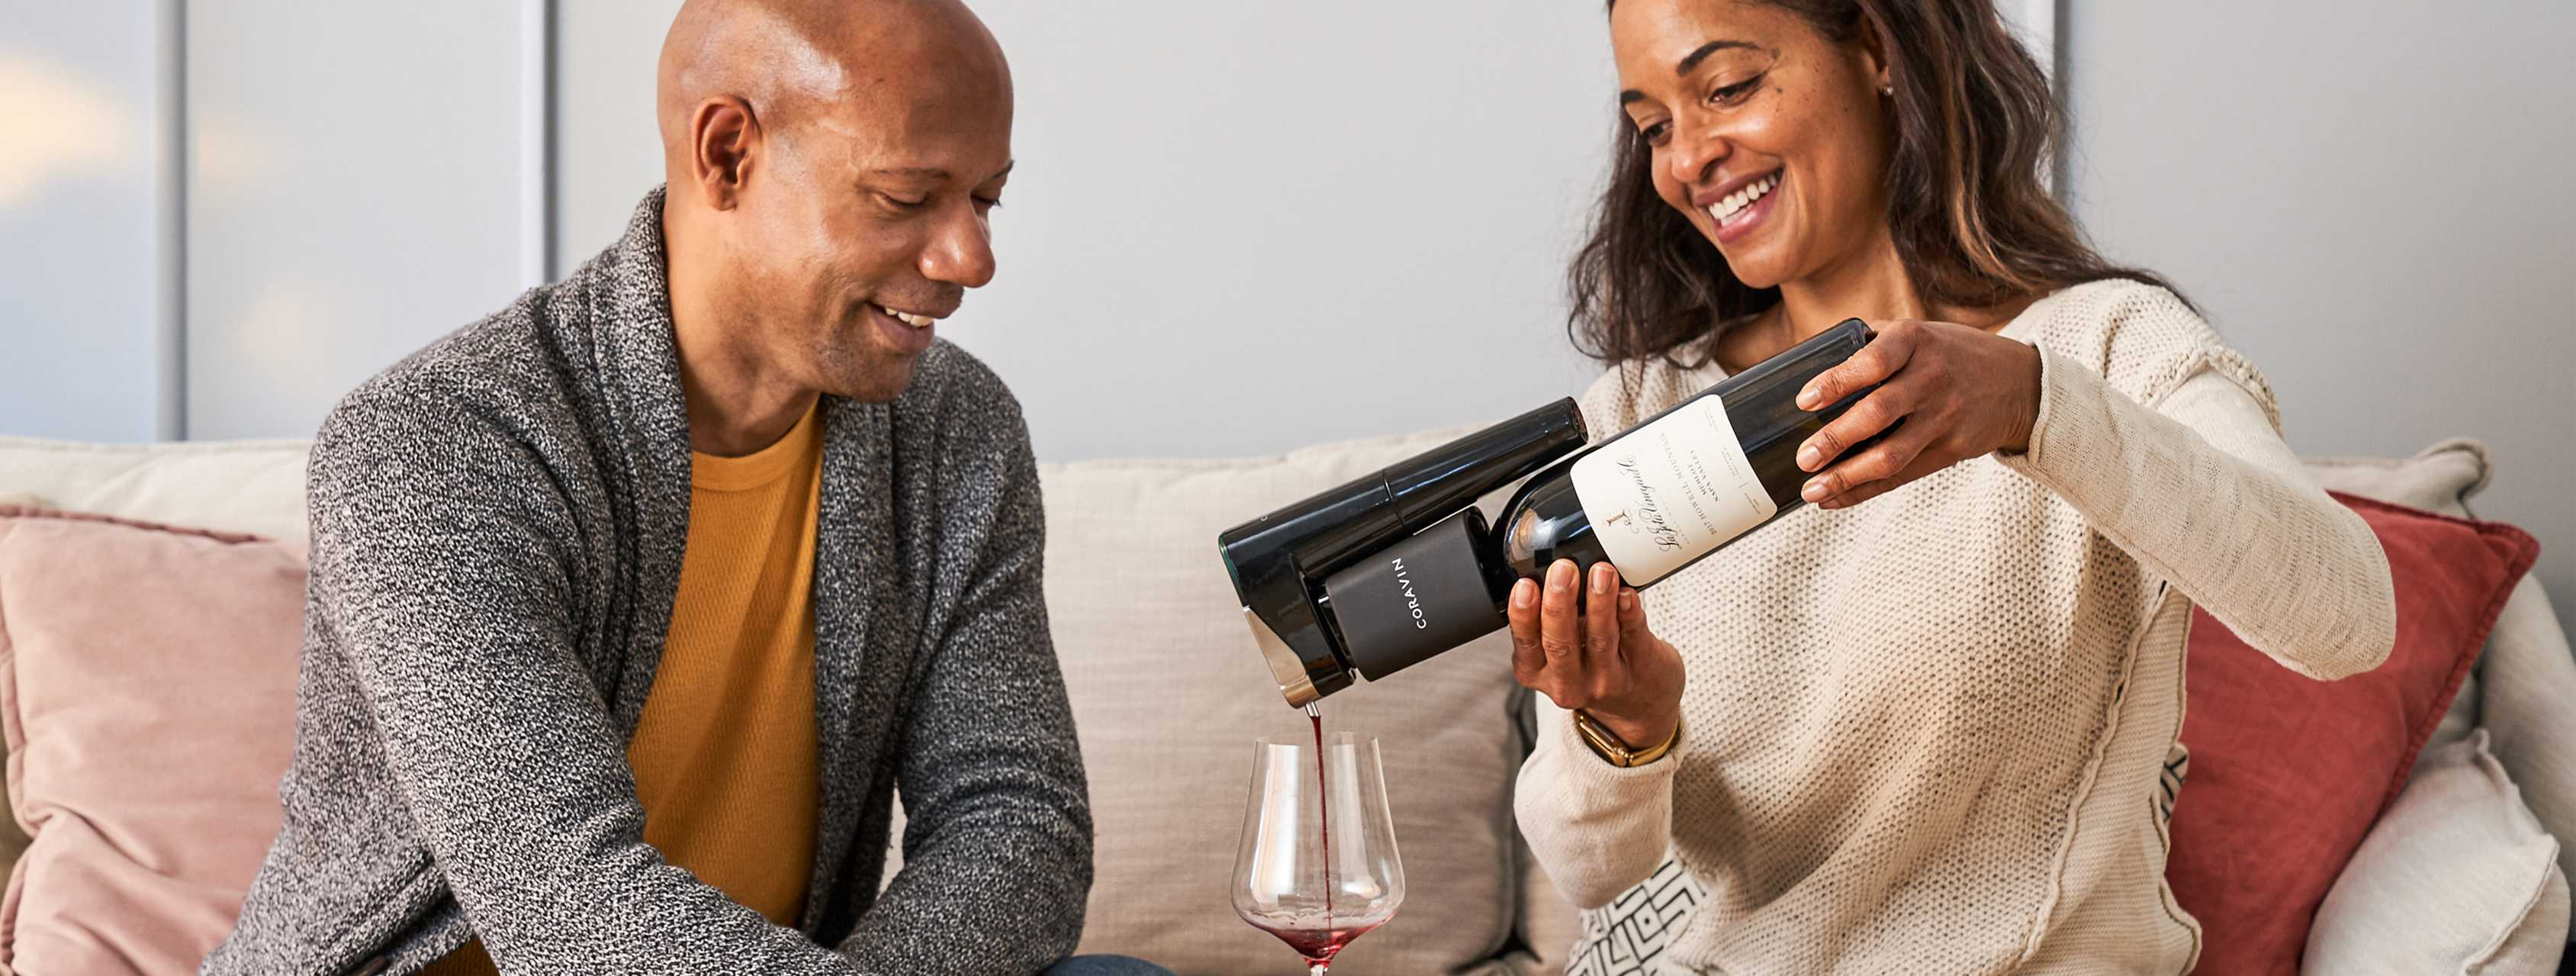 Couple pouring red wine into a glass while sitting on a couch.